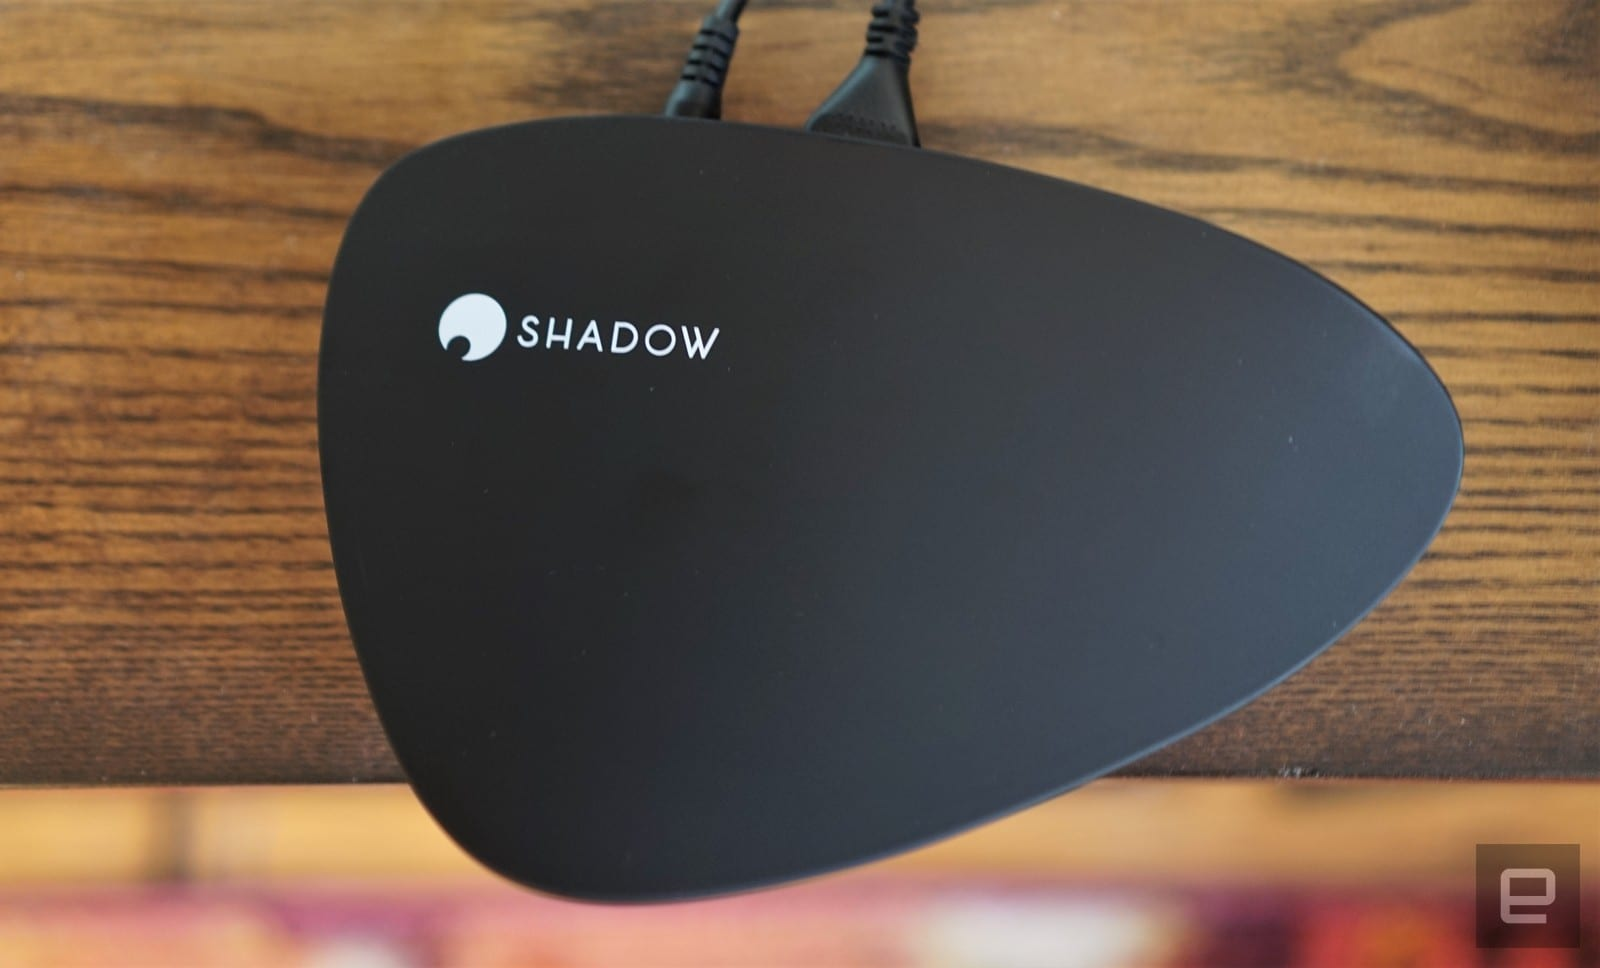 The Shadow Ghost game-streaming box won't replace your PC or